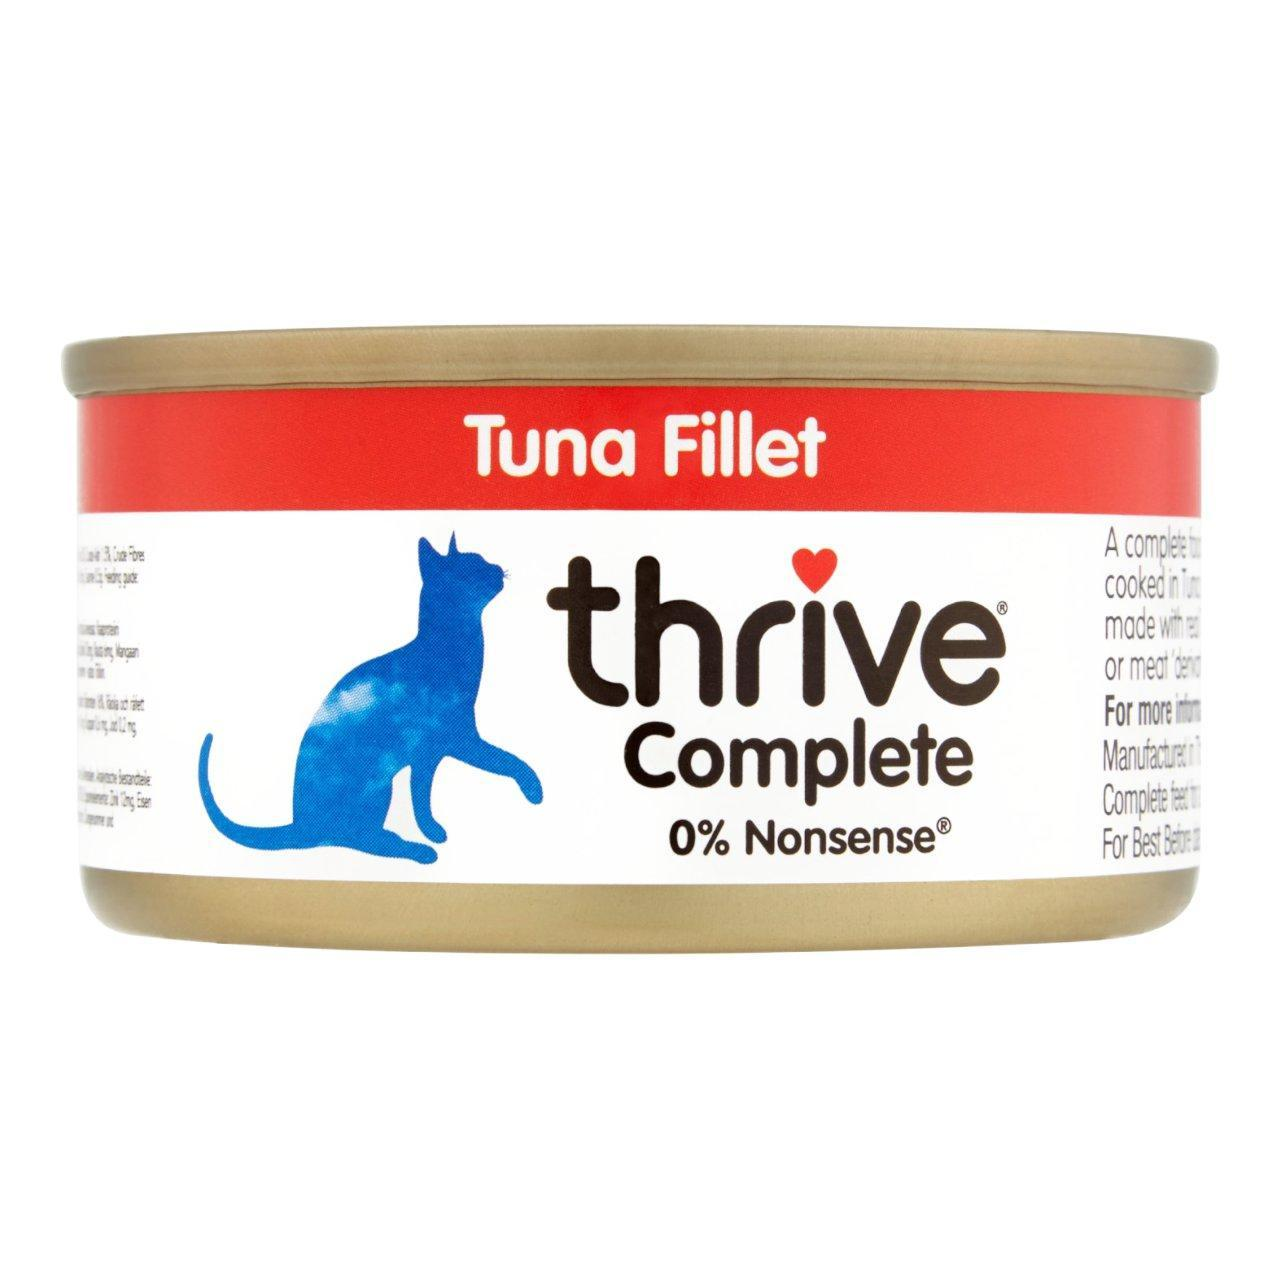 An image of Thrive Complete Tuna Fillet Cat Food